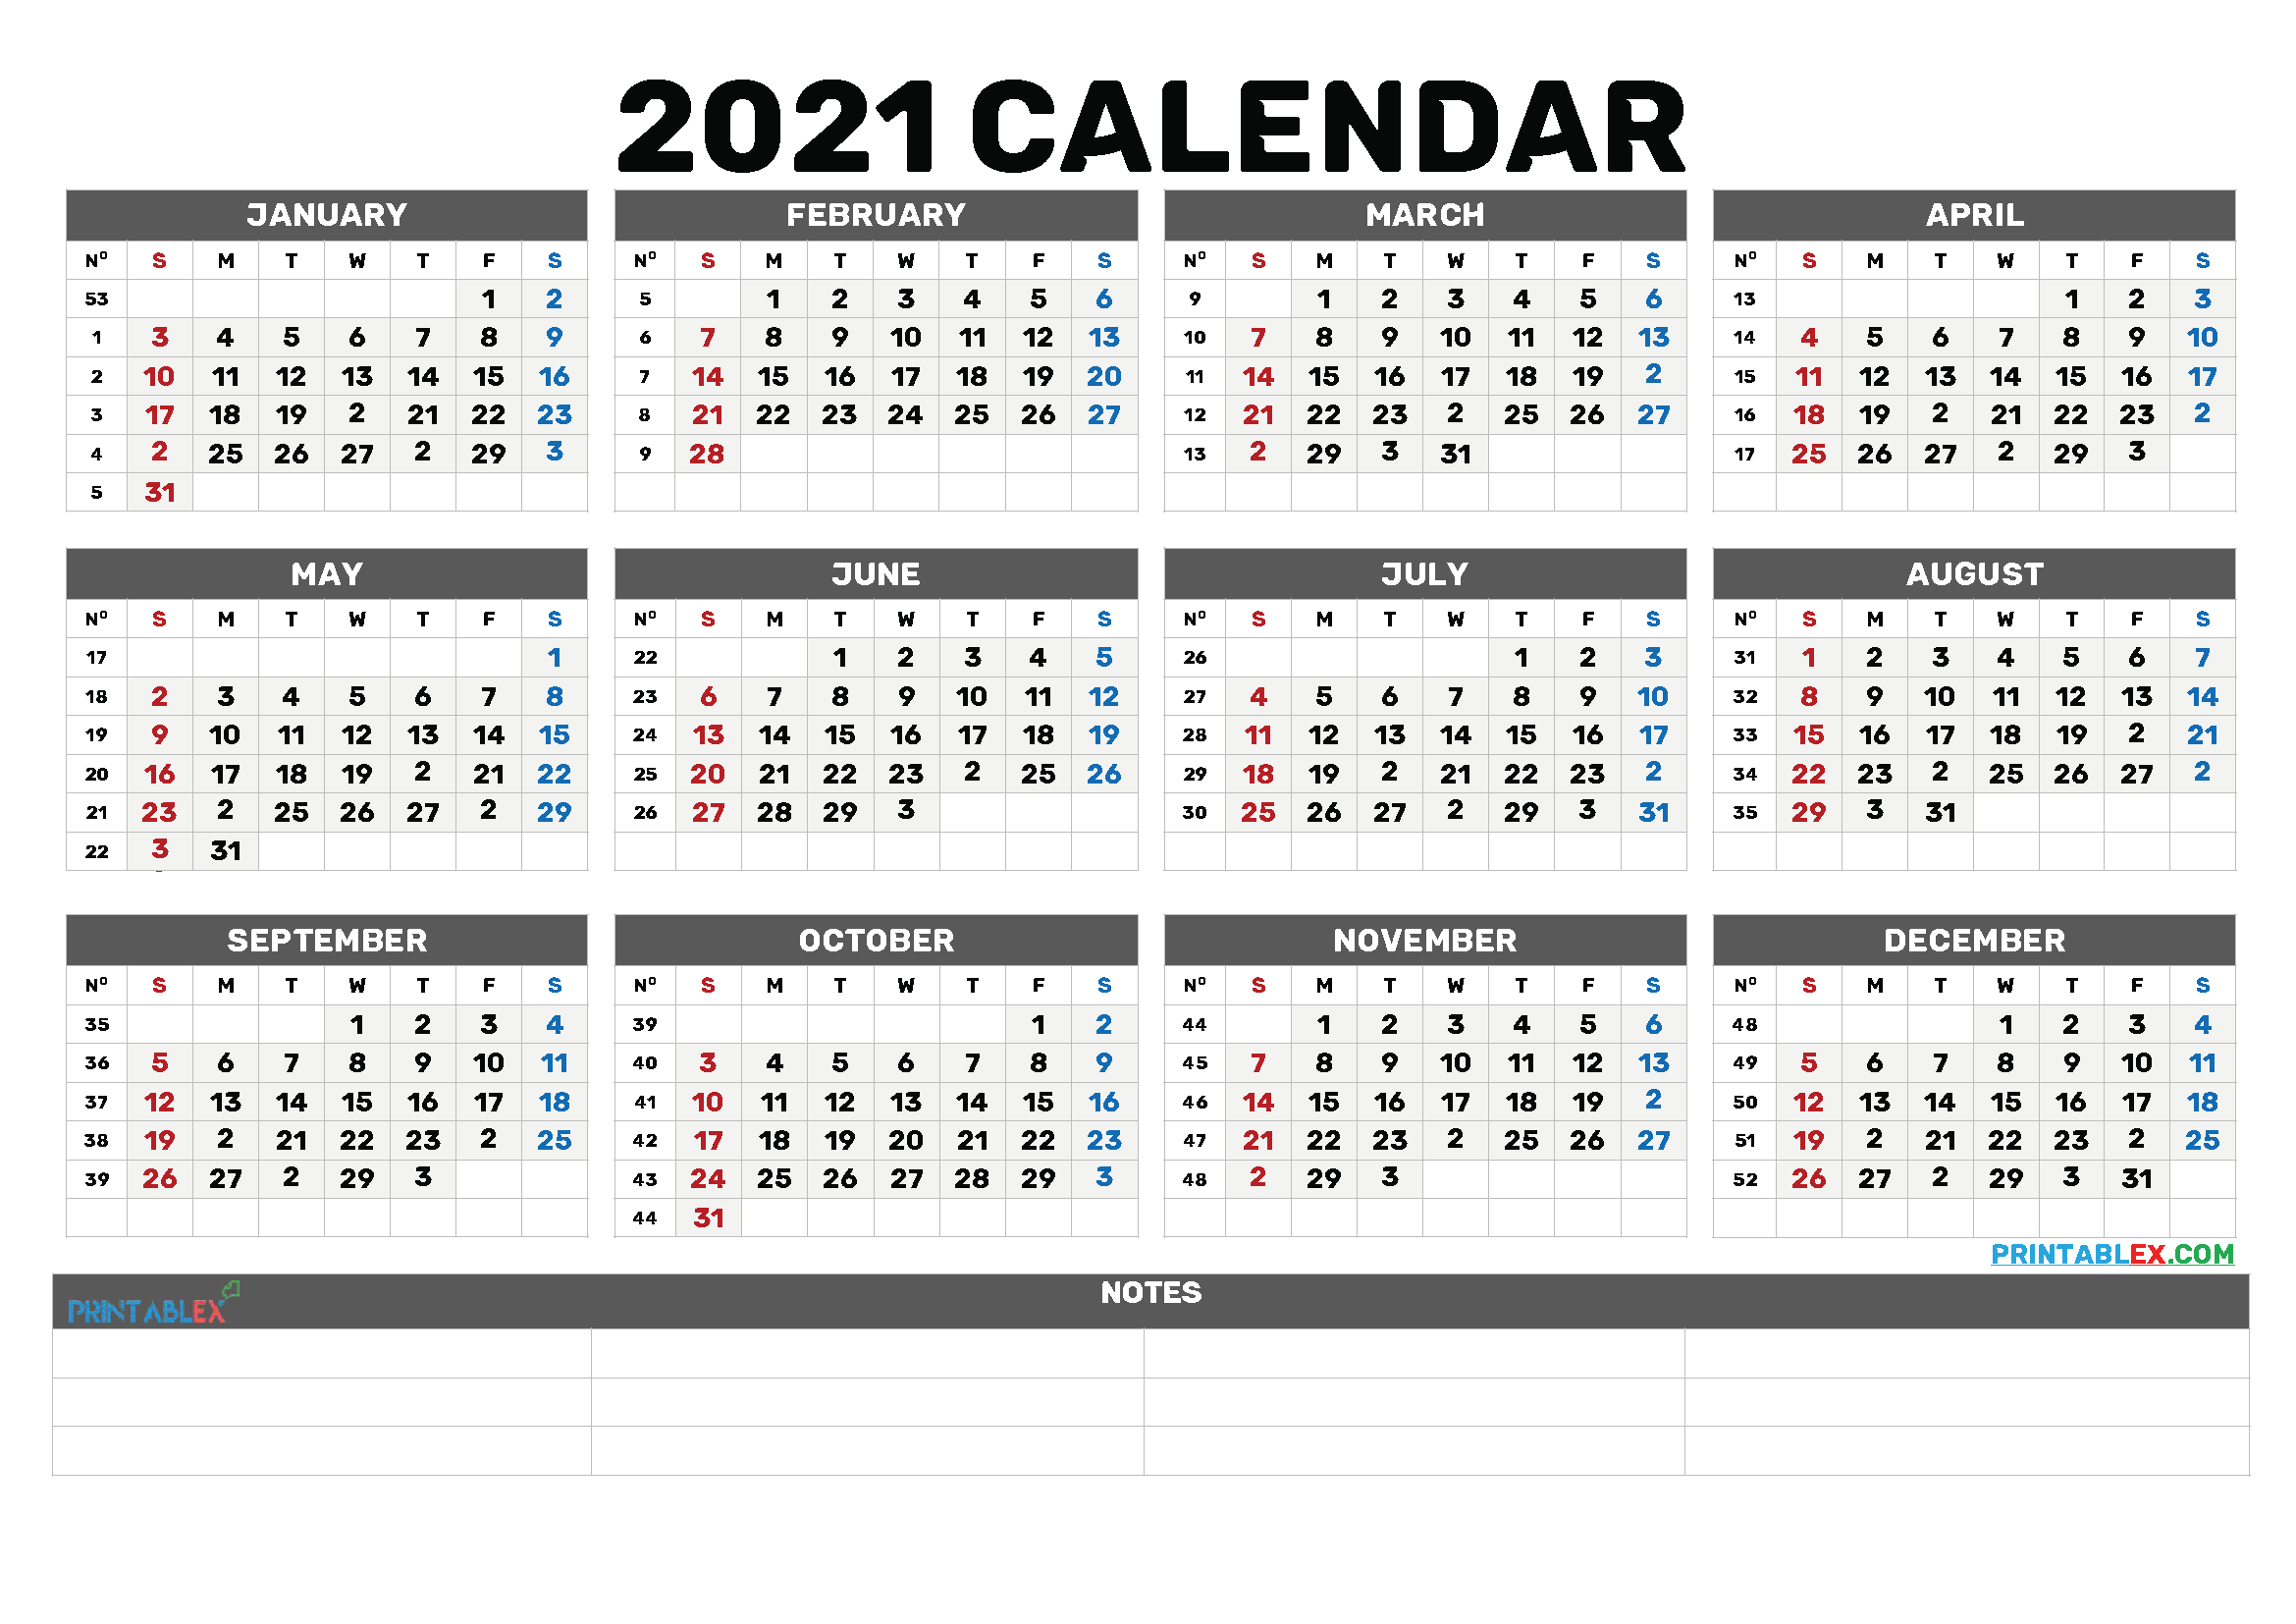 Printable 2021 Calendar by Month (Font: maiden)